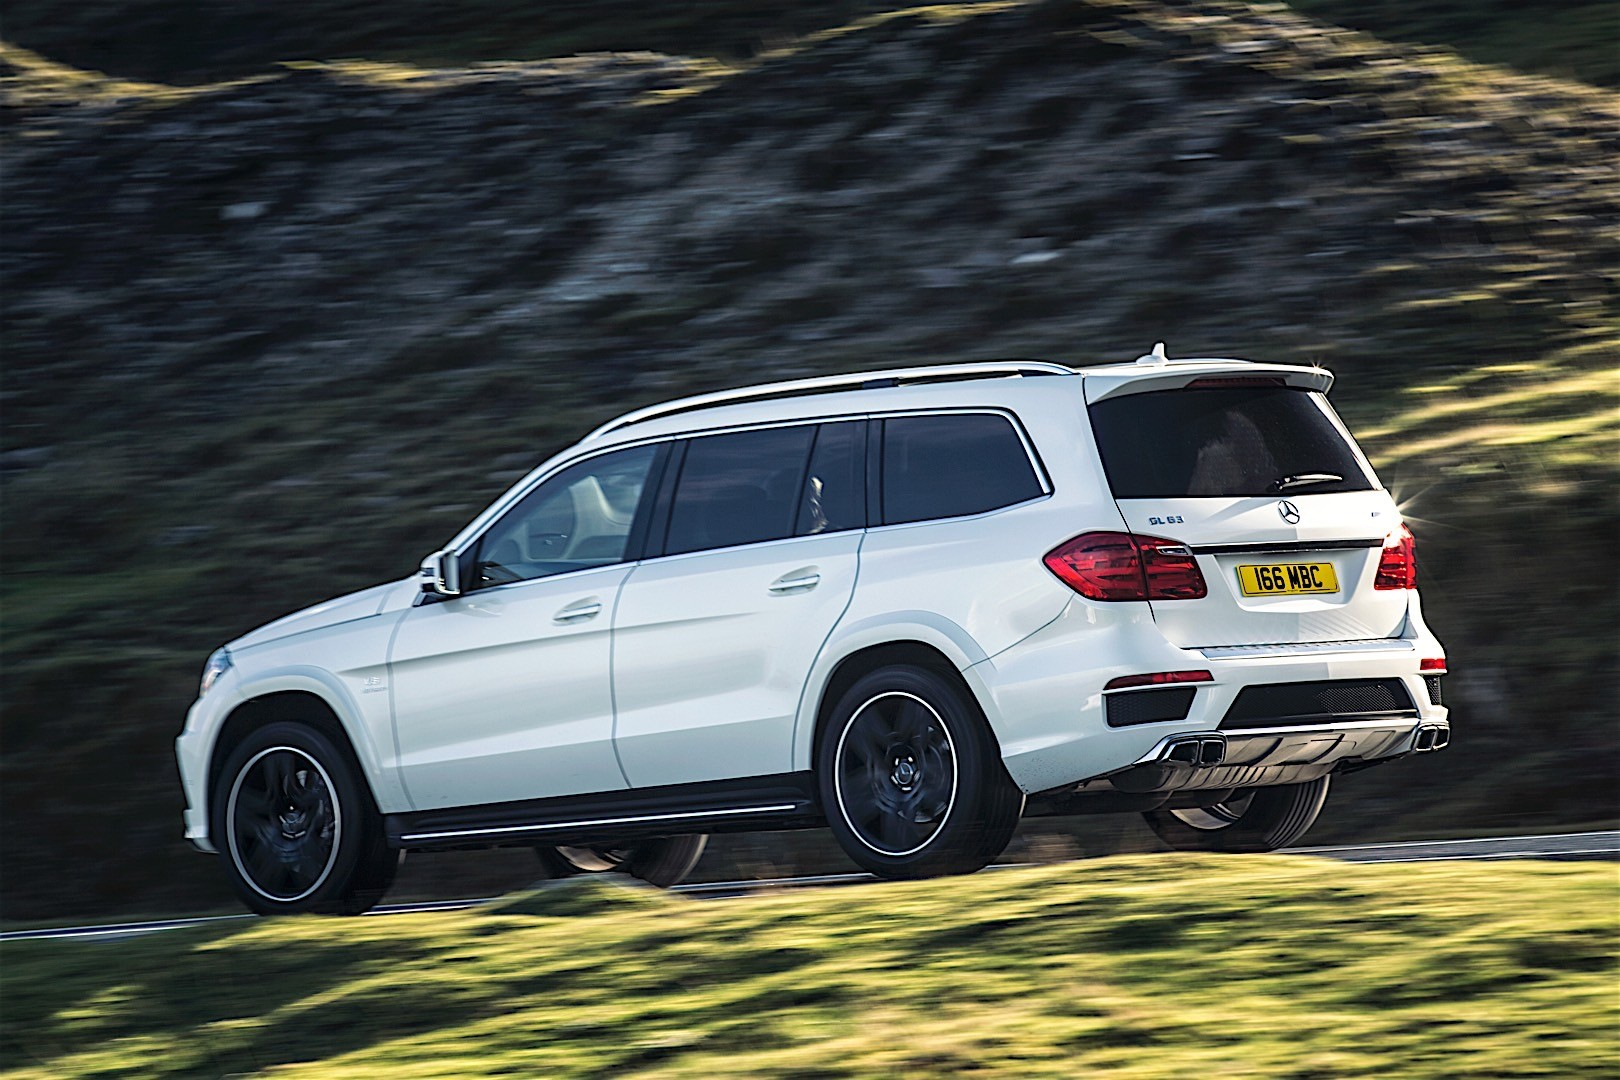 Mercedes benz gl 63 amg x166 specs 2012 2013 2014 for Mercedes benz car picture gallery